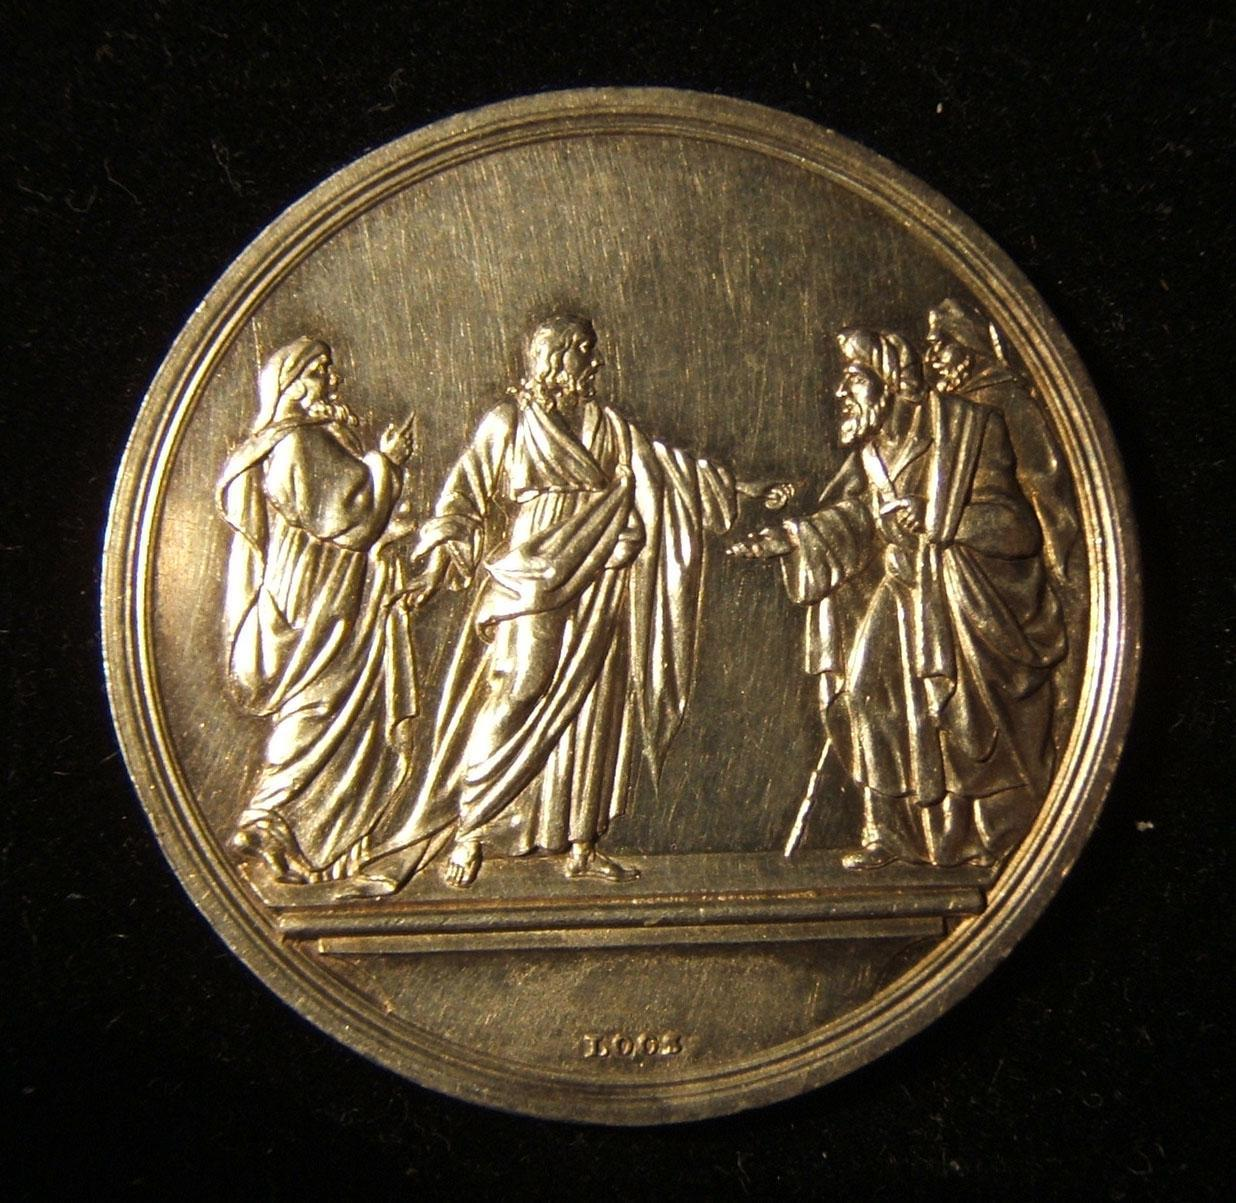 Germany: Religious festivals 'occasion' medal (